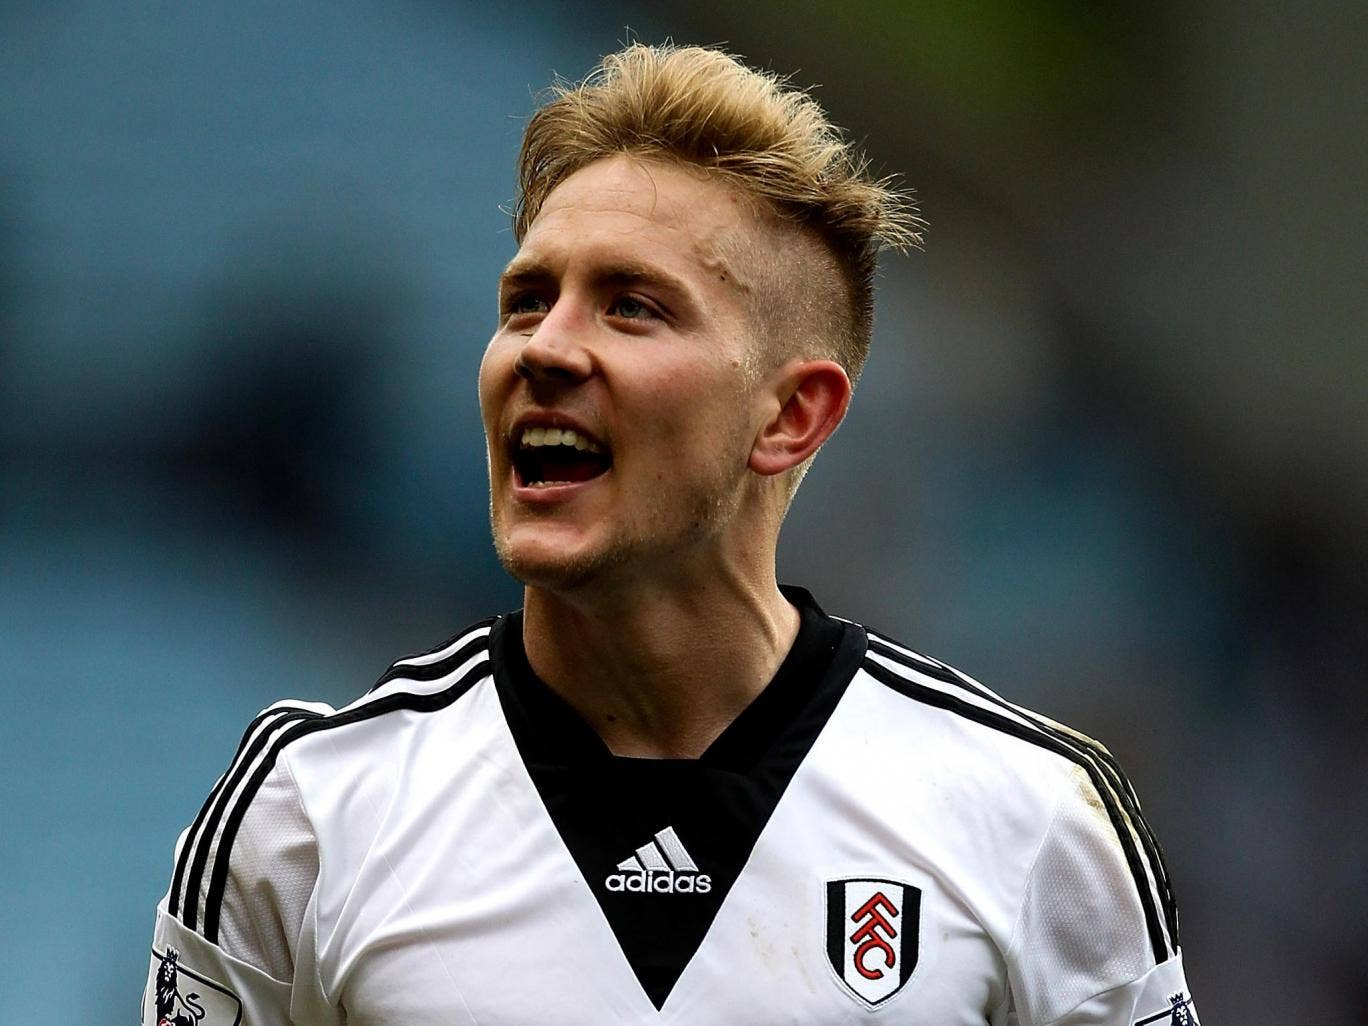 Tottenham midfielder Lewis Holtby, on loan with Fulham, is hoping the Cottagers beat his parent club in order to avoid relegation